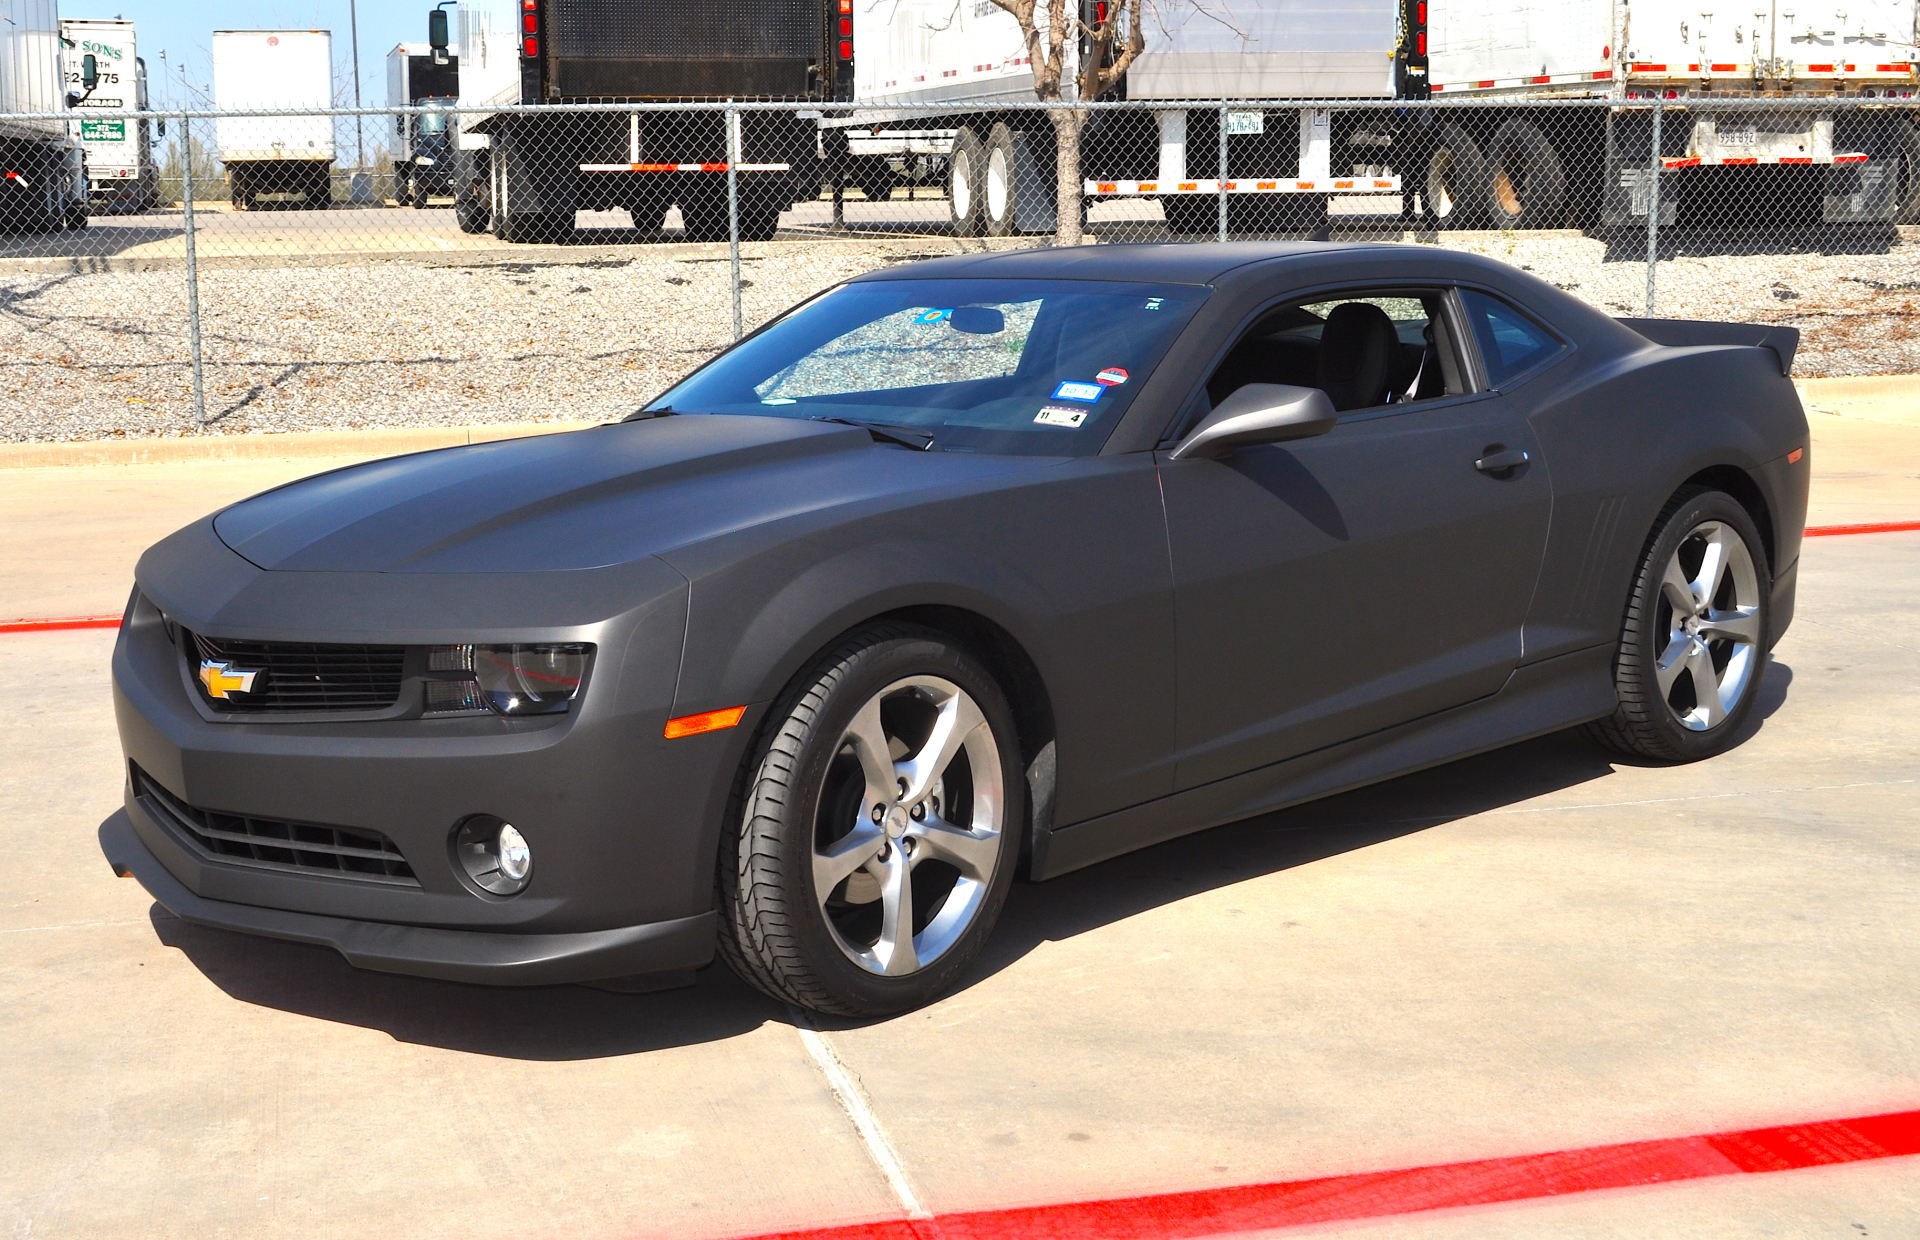 Matte Black Camaro, matte black car wrap, color change car wrap, matte wrap Dallas, matte wrap Ft Worth, Matte wrap denton, matte wrap lewisville, matte wrap irving, matte wrap arlington